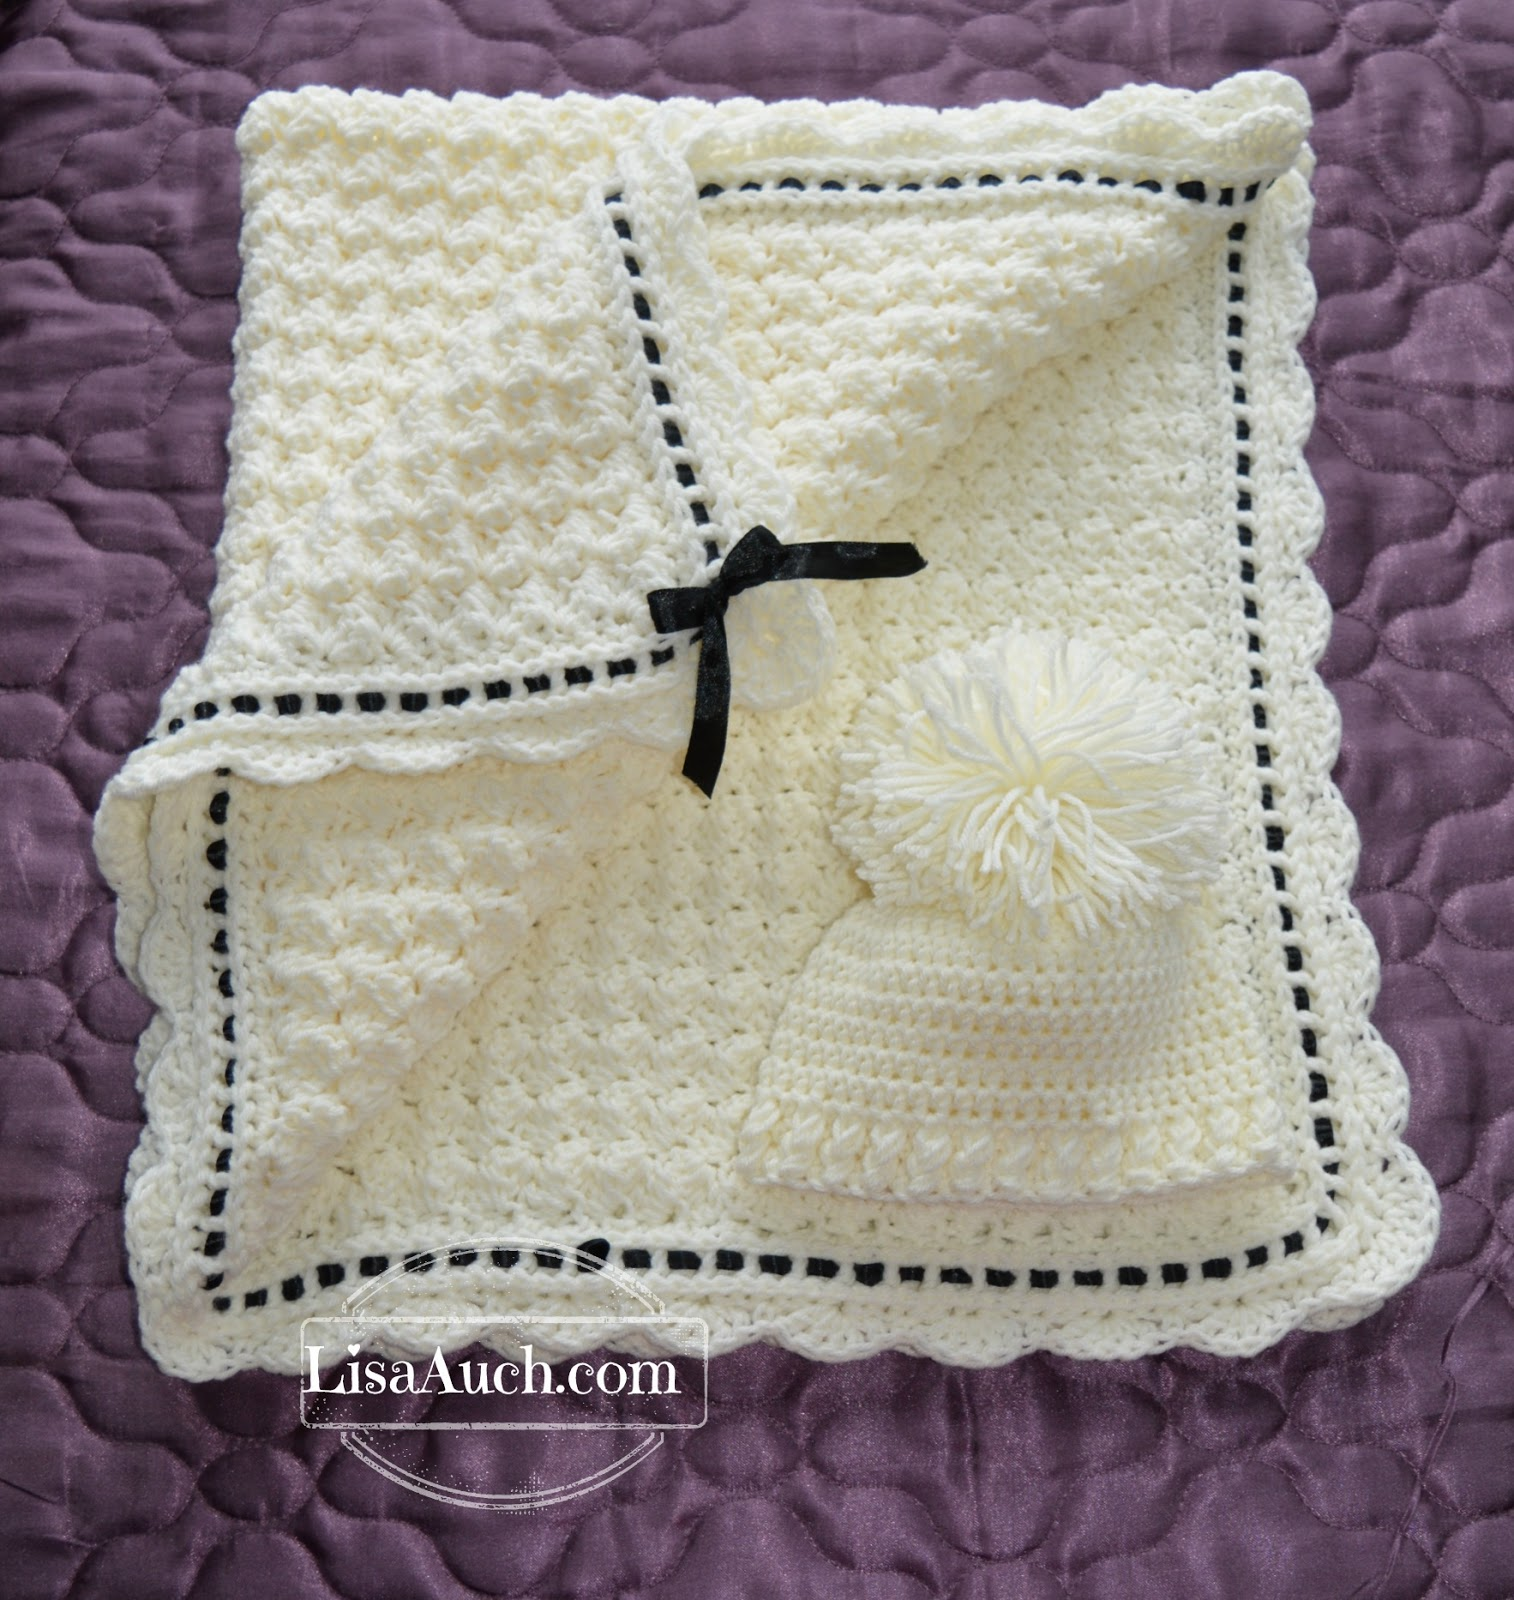 Crochet Baby Blanket Crochet Baby Hat Pattern (Crochet Hat and ...